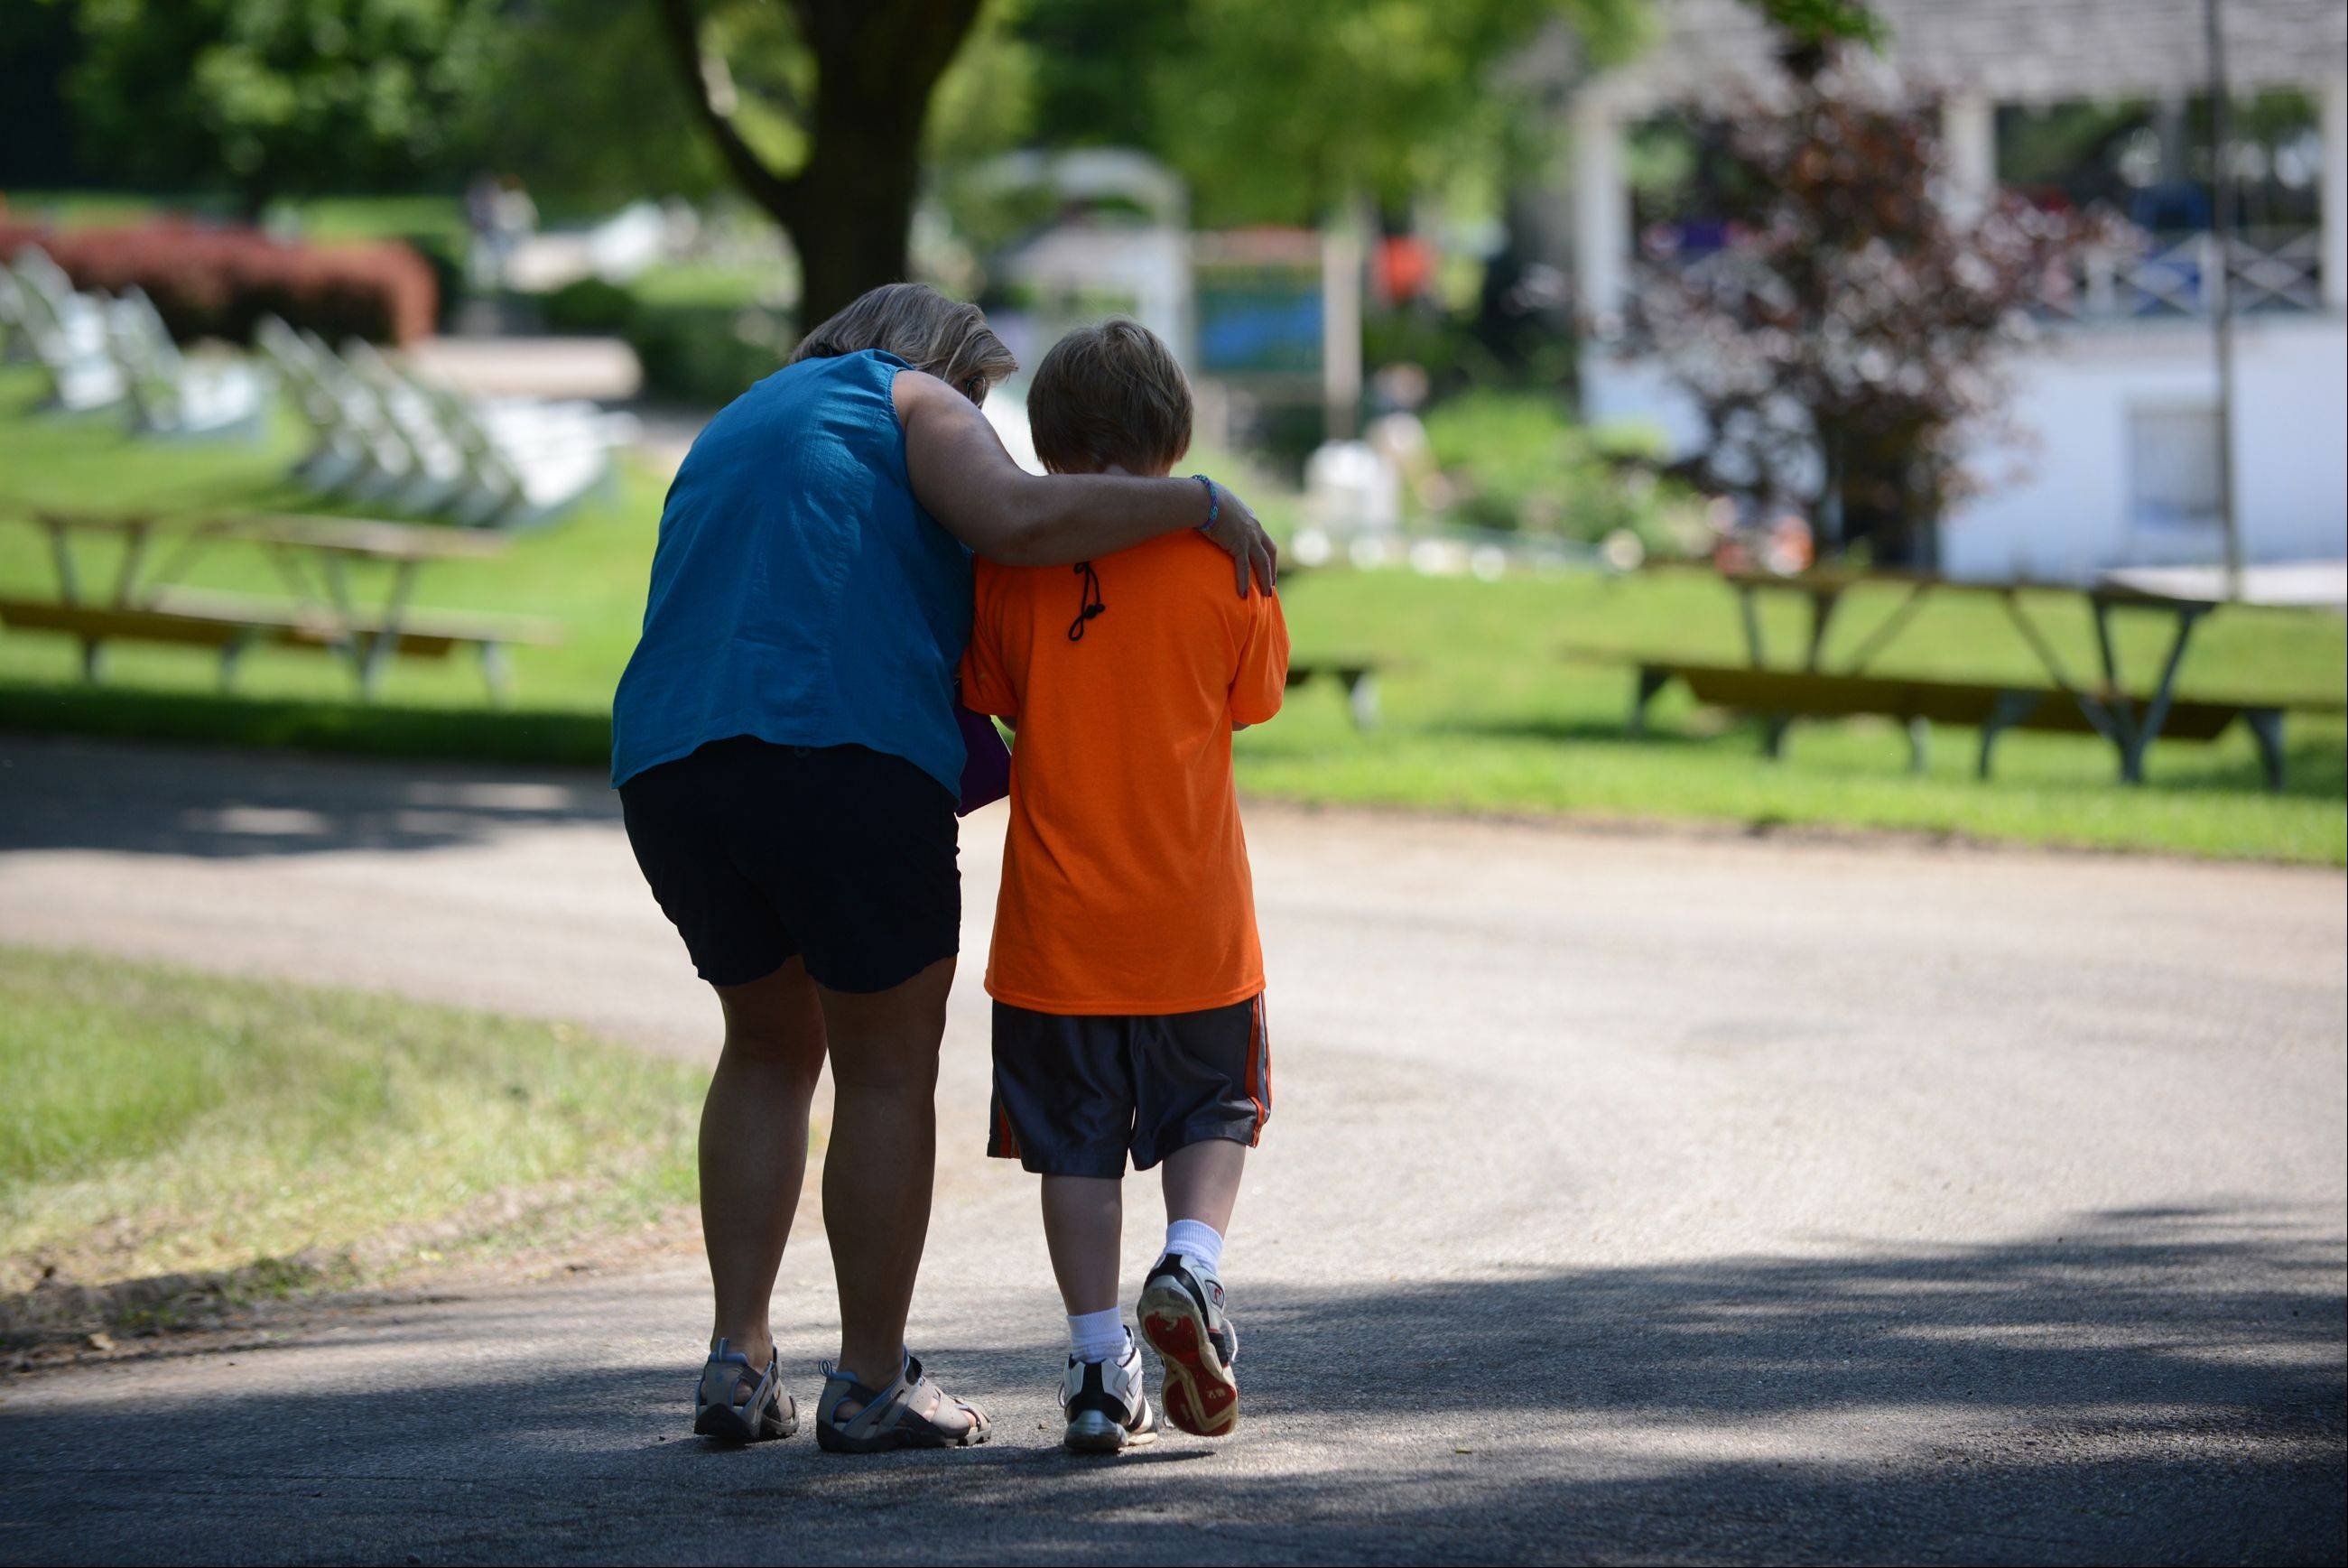 Royal Family Kids Camp Counselor Amy Wildman of Geneva comforts a camper as she walks with him at the camp in Wisconsin.